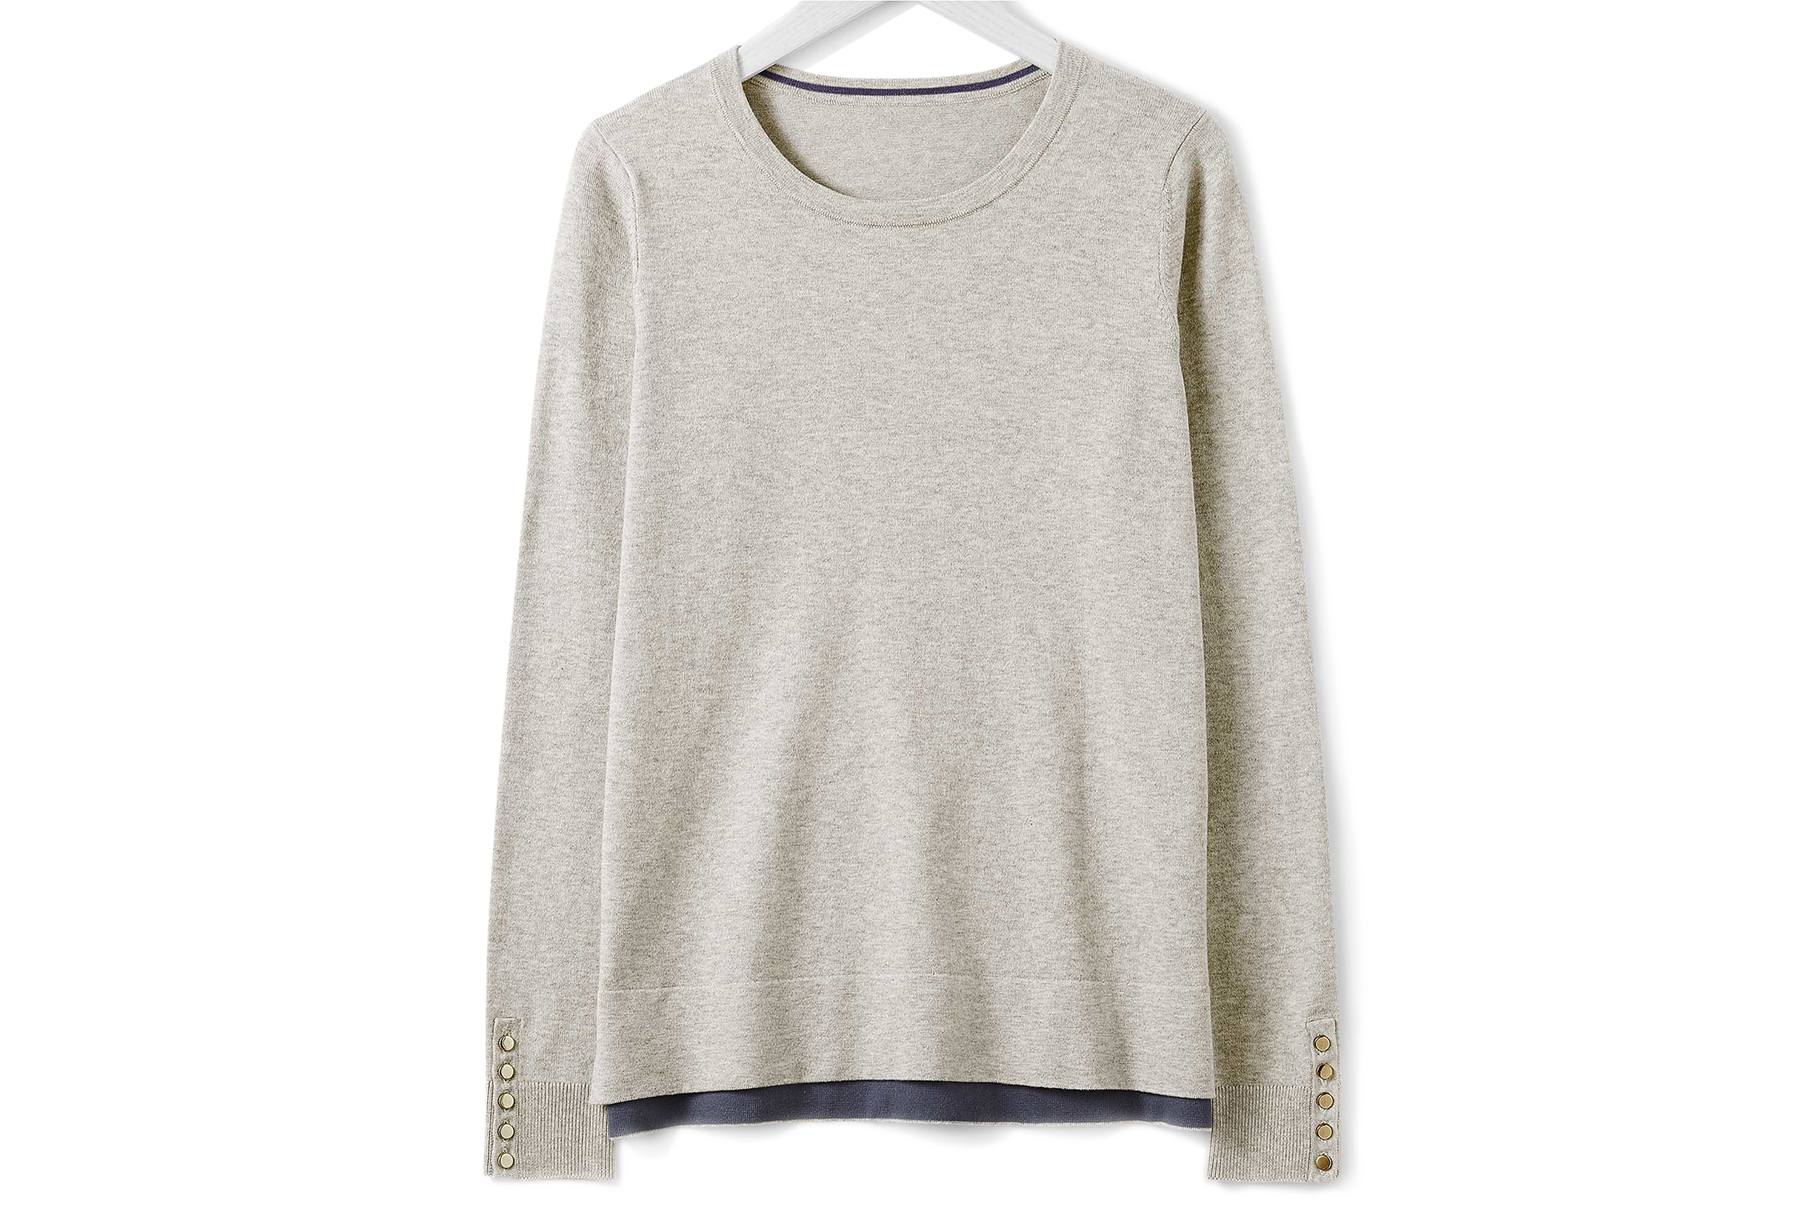 Boden Tilly Sweater